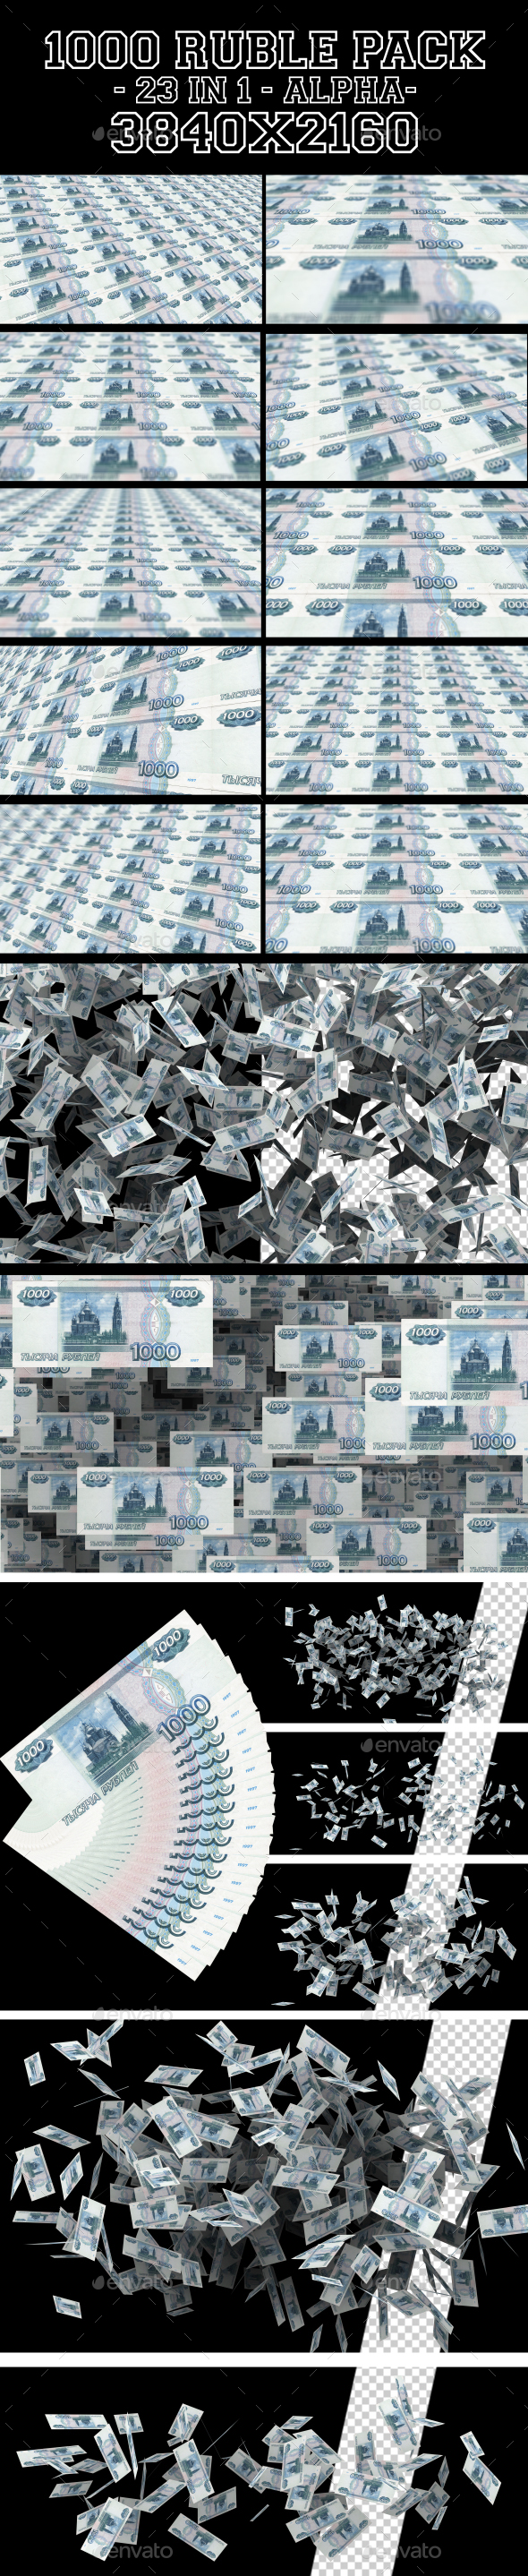 1000 Rubles Pack 23 in 1 - Abstract Backgrounds